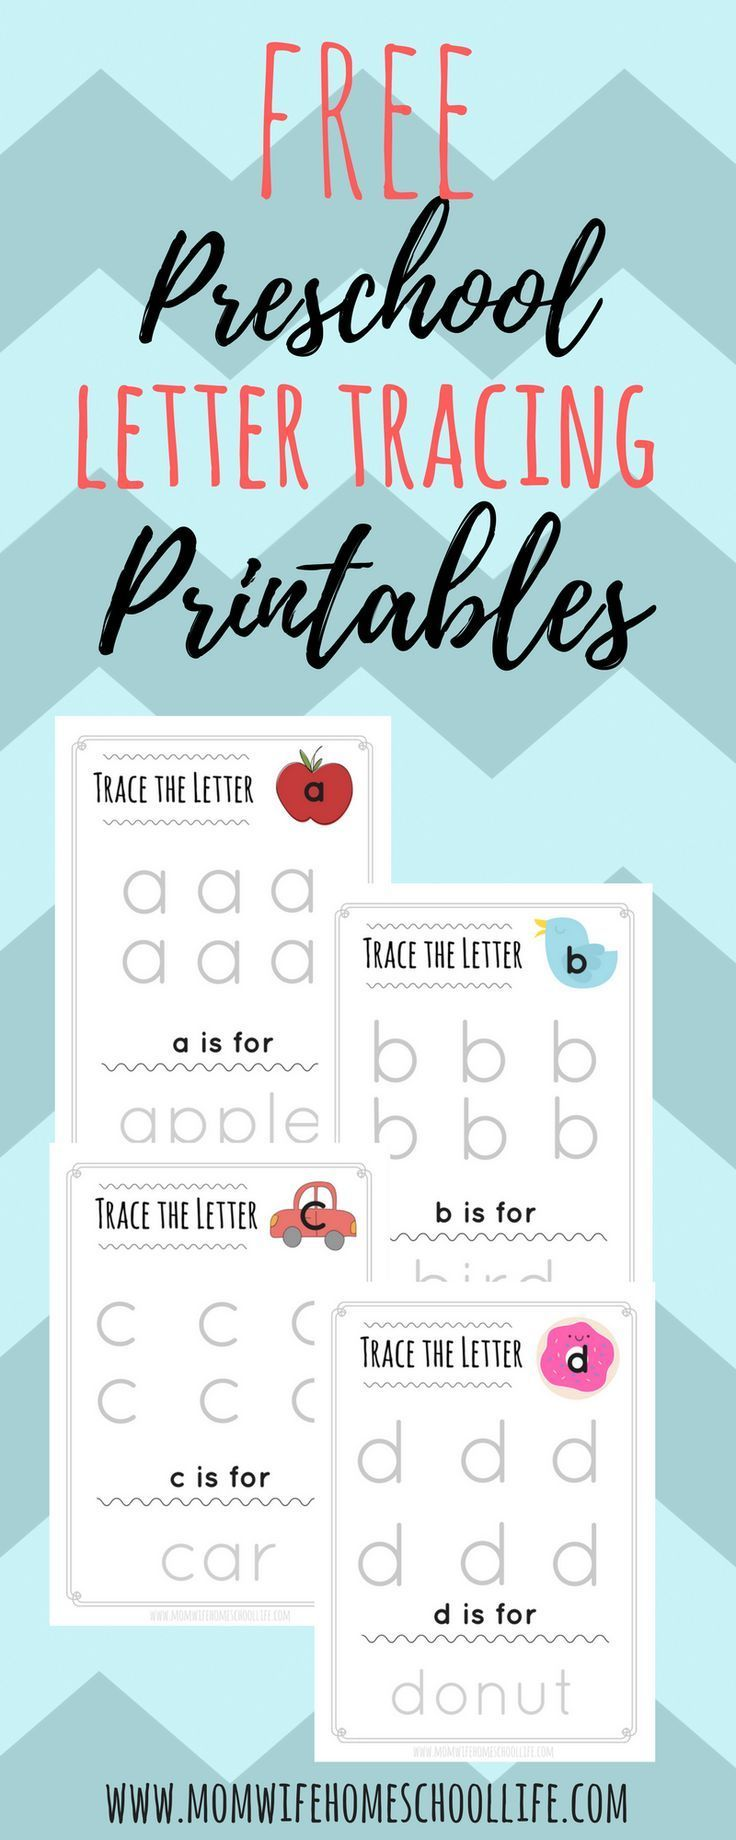 Trace the Letter: Lowercase Alphabet Tracing | Homeschool ...